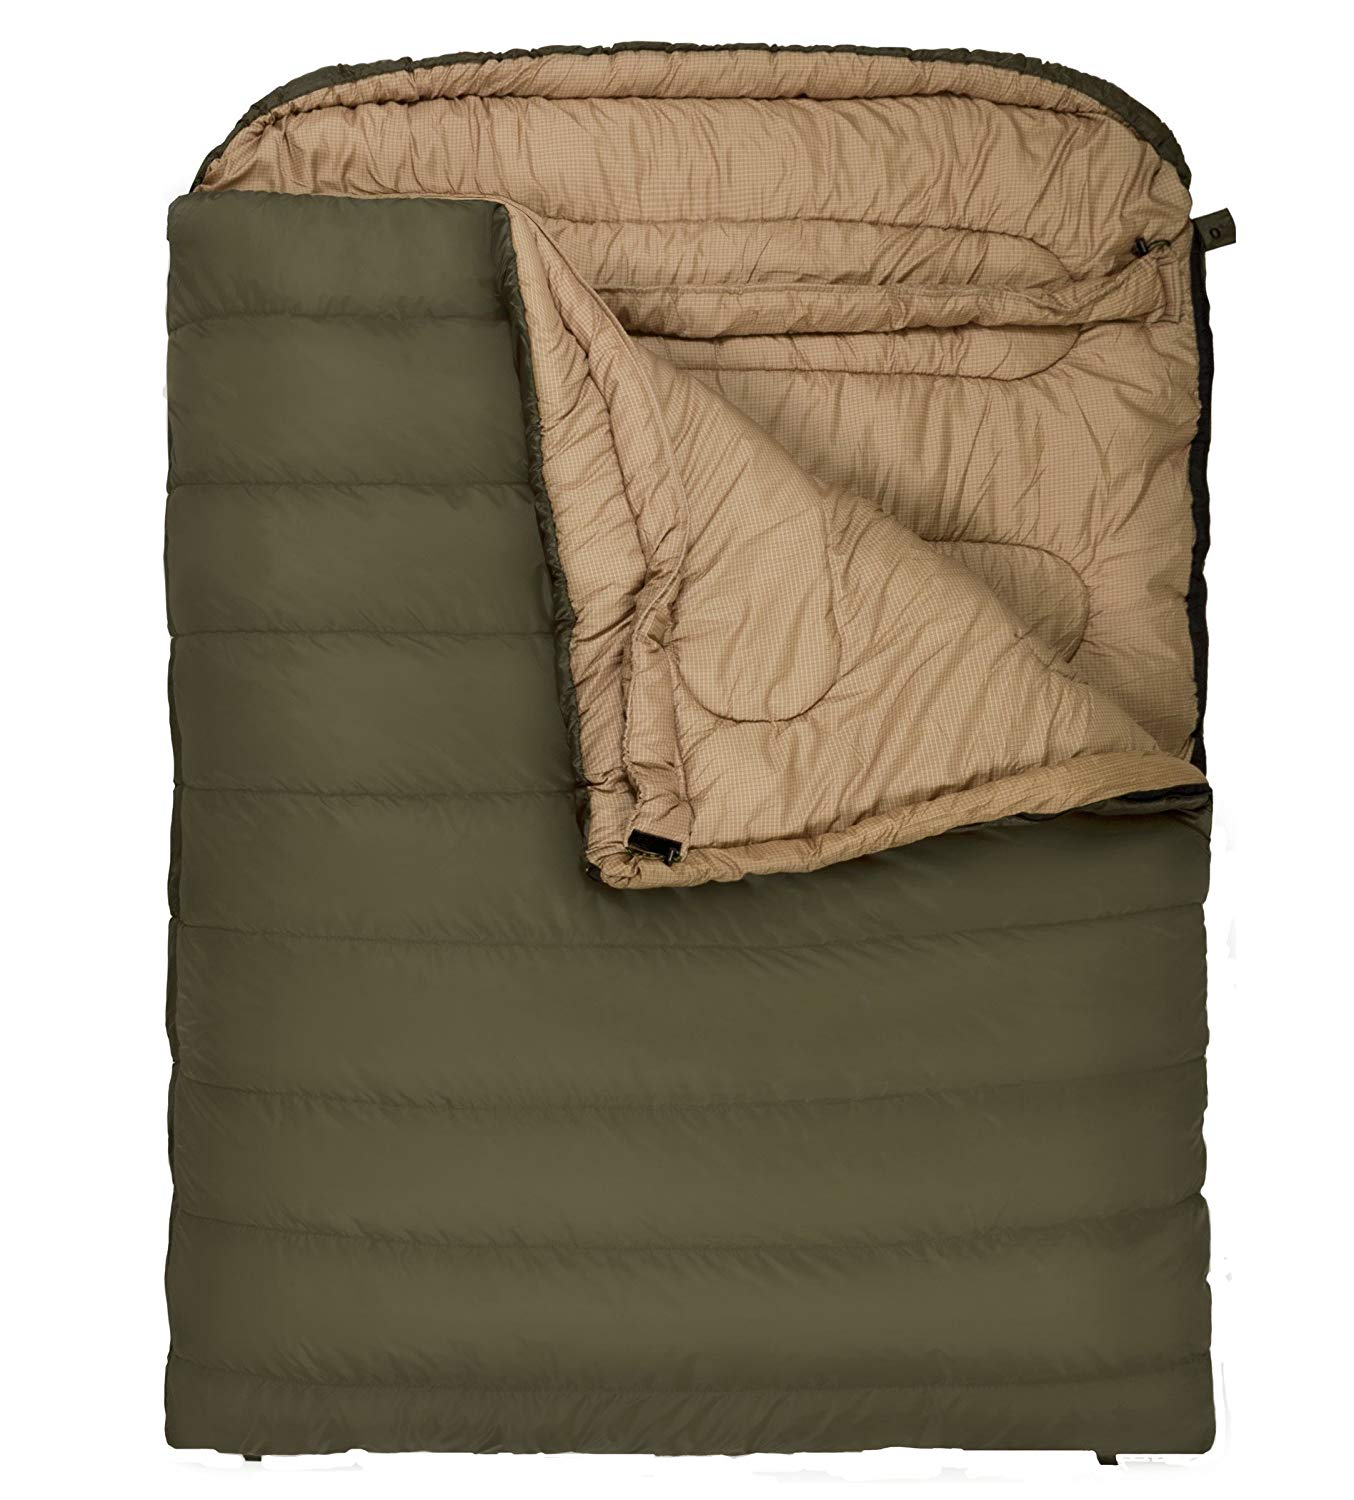 TETON Best Sleeping Bags Review by www.snoremagazine.com